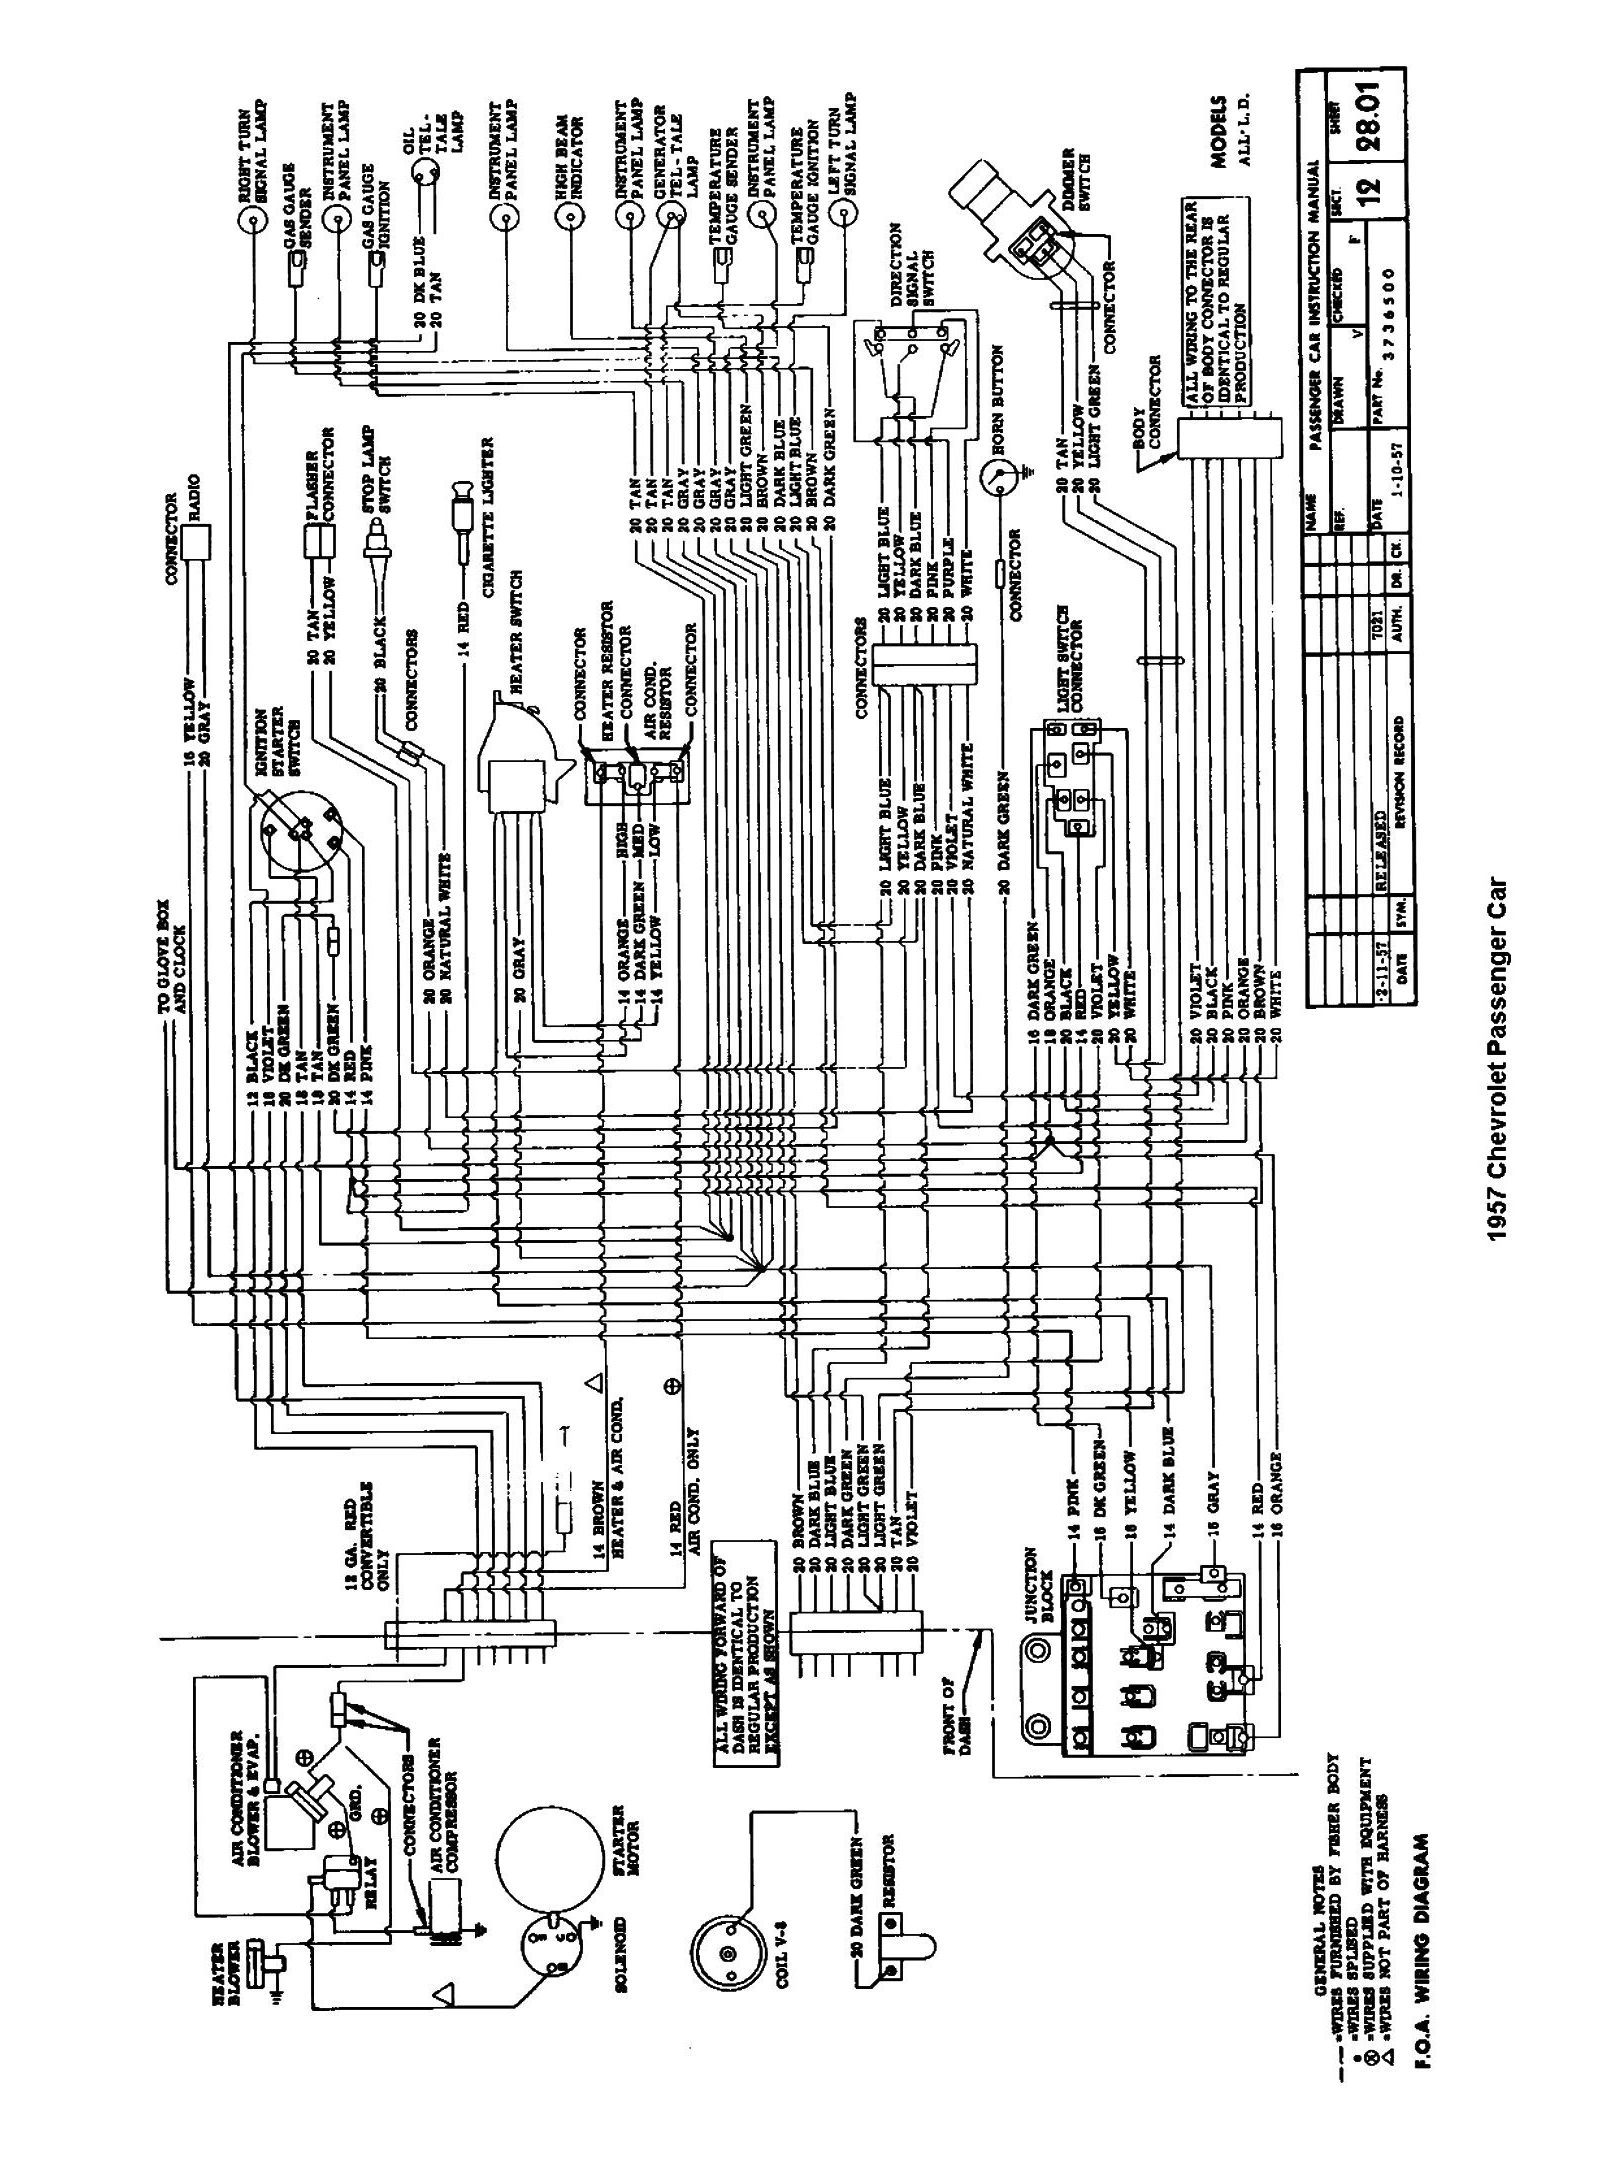 1963 chevy nova wiring diagram 1957 chevy wiring diagram 1957 wiring diagrams